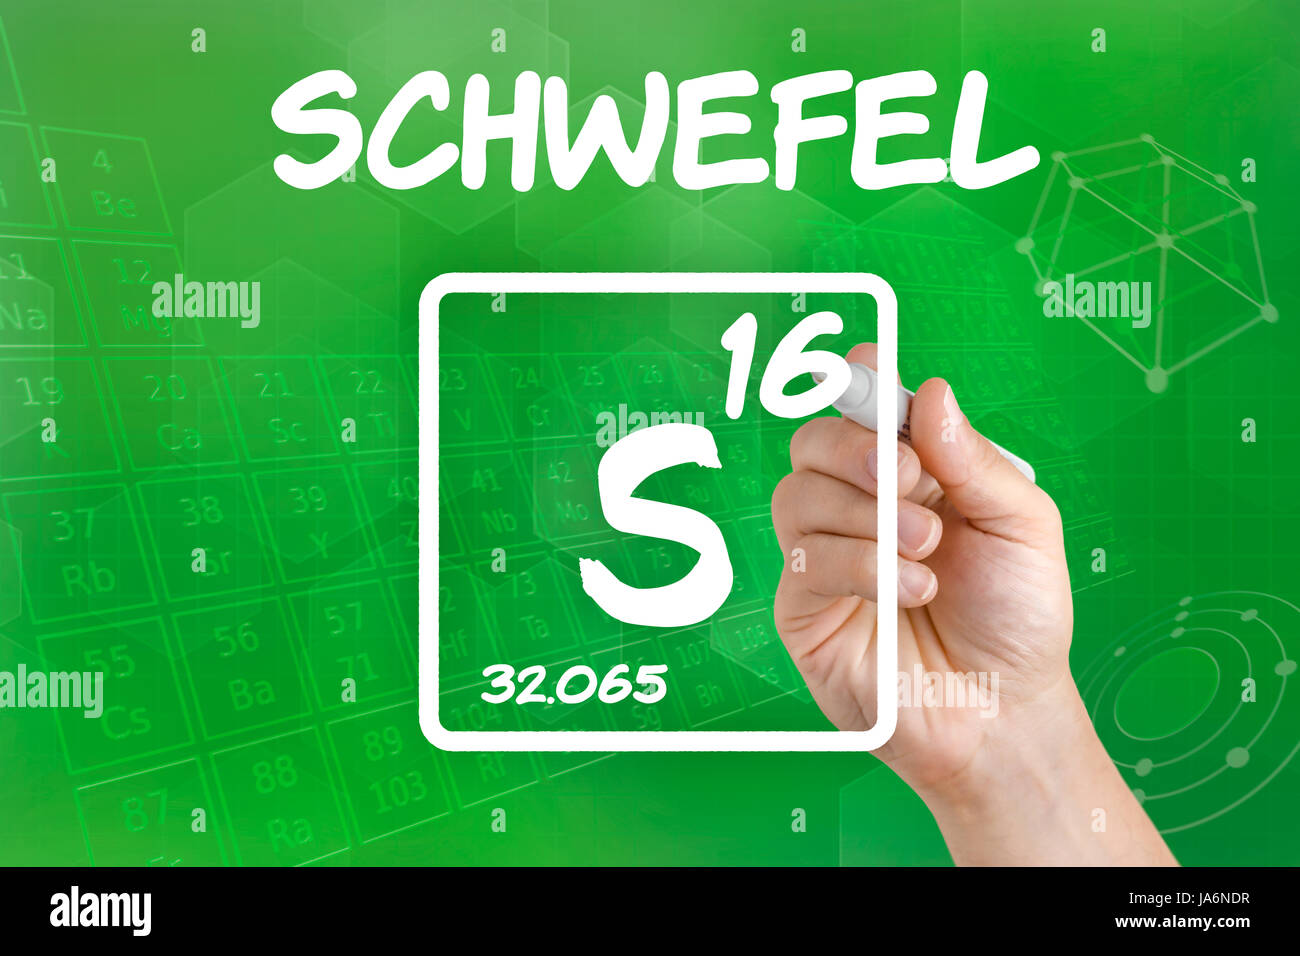 Symbol of the chemical element sulfur stock photo 143978067 alamy symbol of the chemical element sulfur buycottarizona Image collections